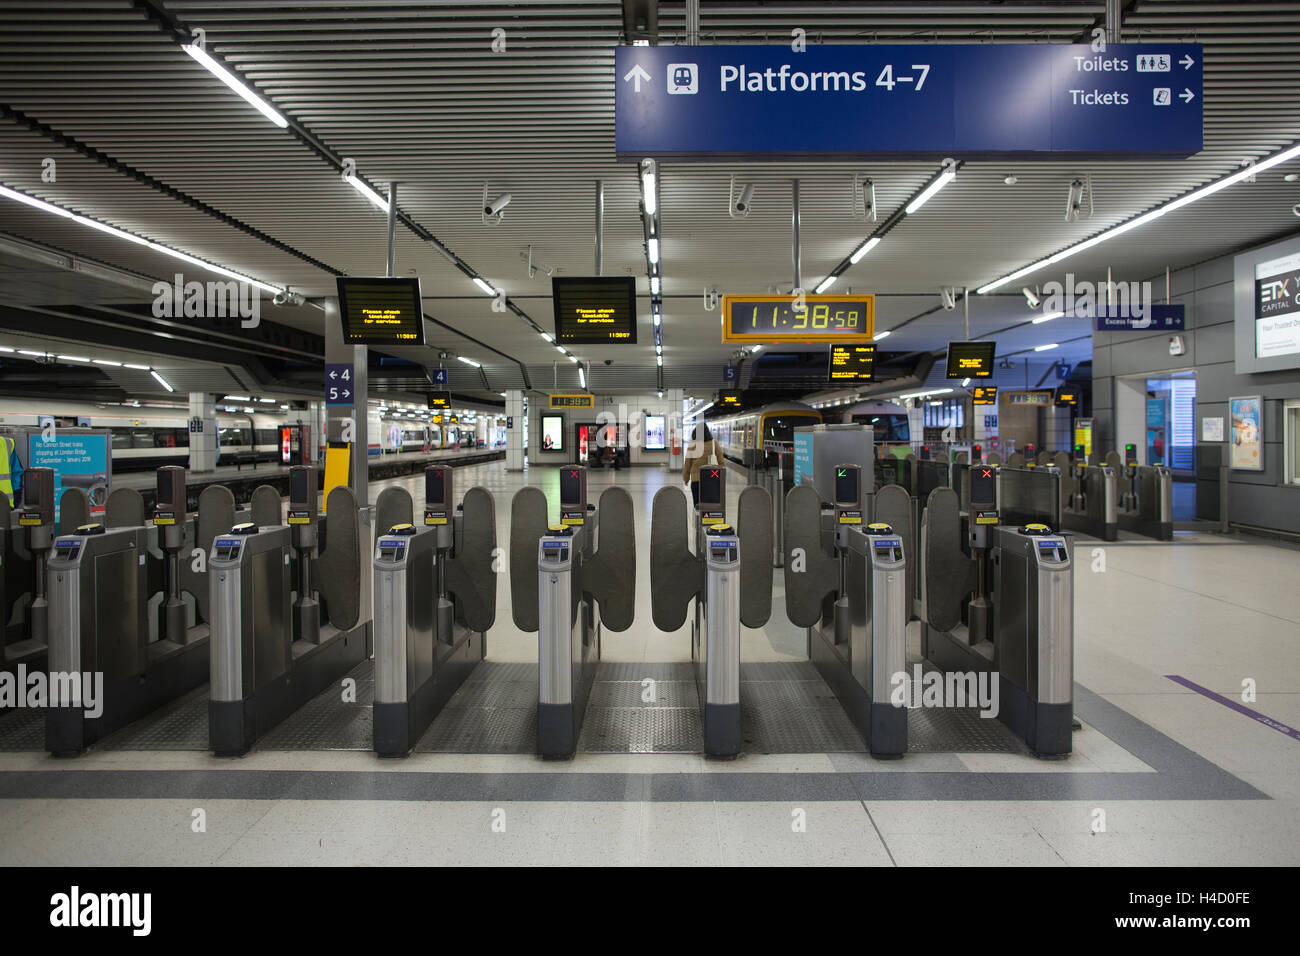 London Cannon Street station, Central London, England, United Kingdom - Stock Image